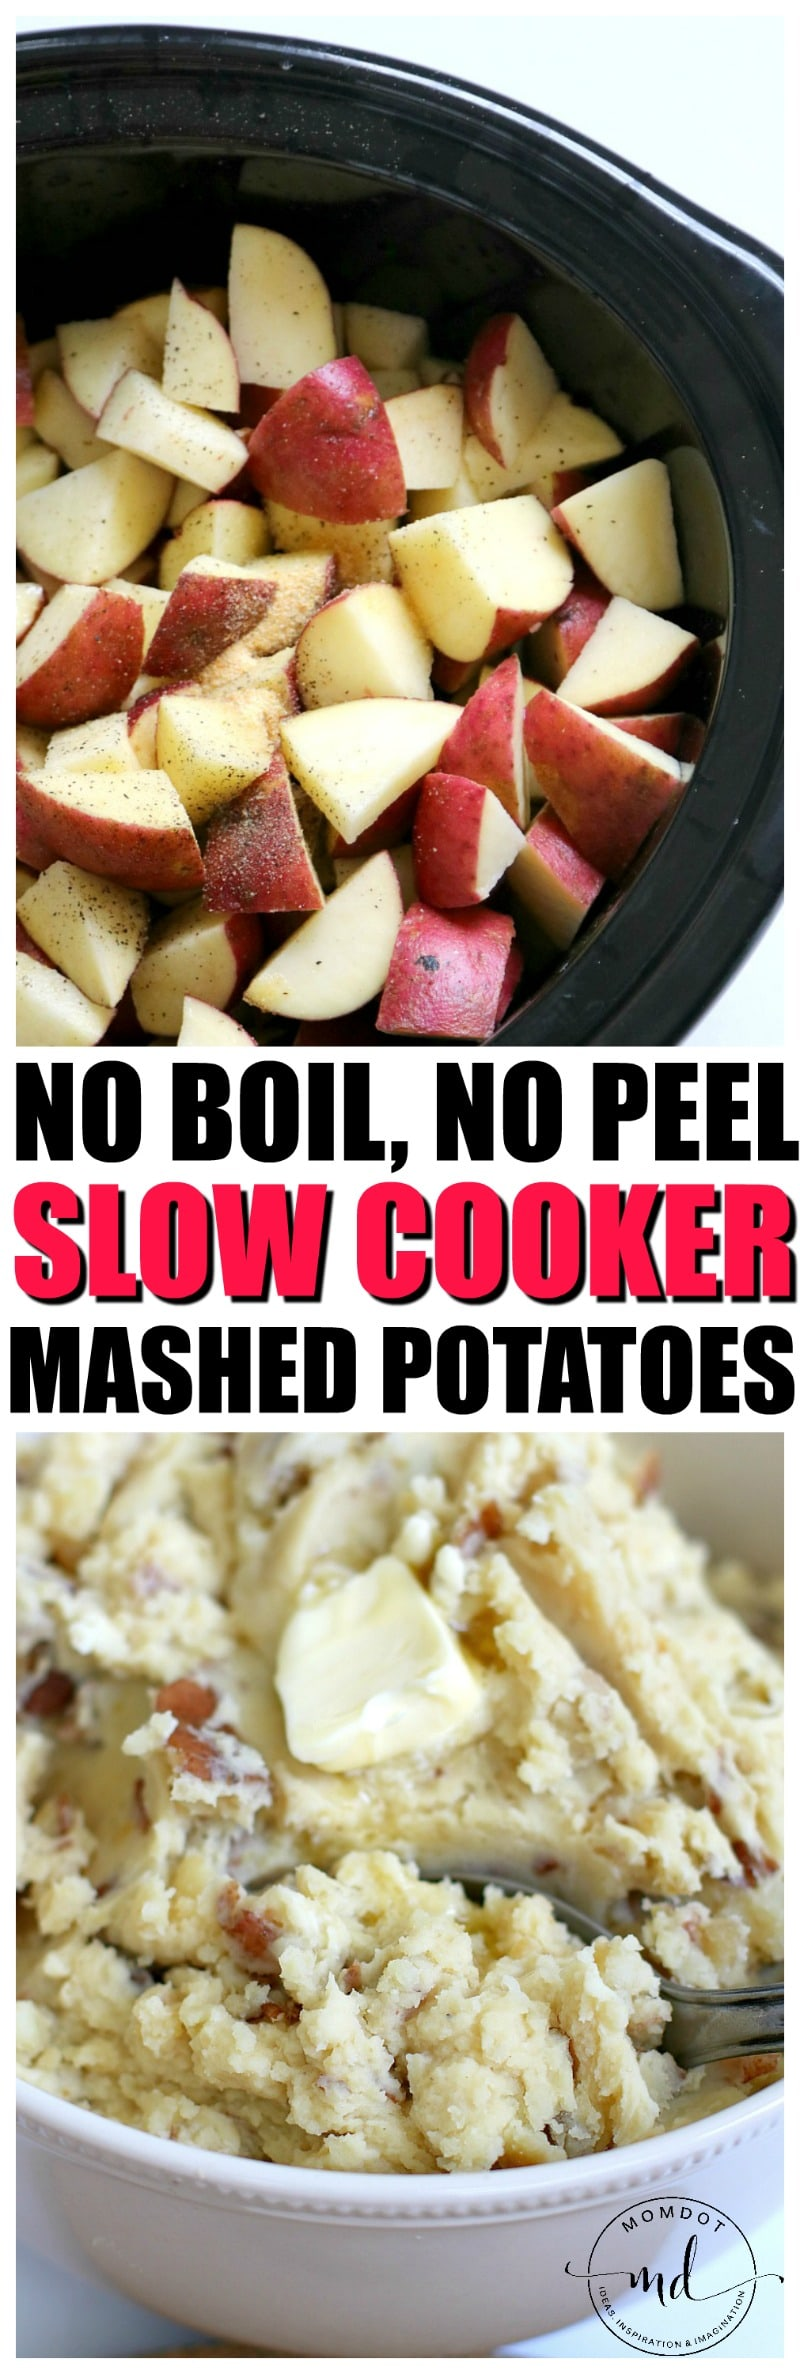 How to make Slow Cooker Mashed Potatoes, No Boil, No peel mashed potatoes in a crock pot, so easy you can make them perfect every meal! Recipe